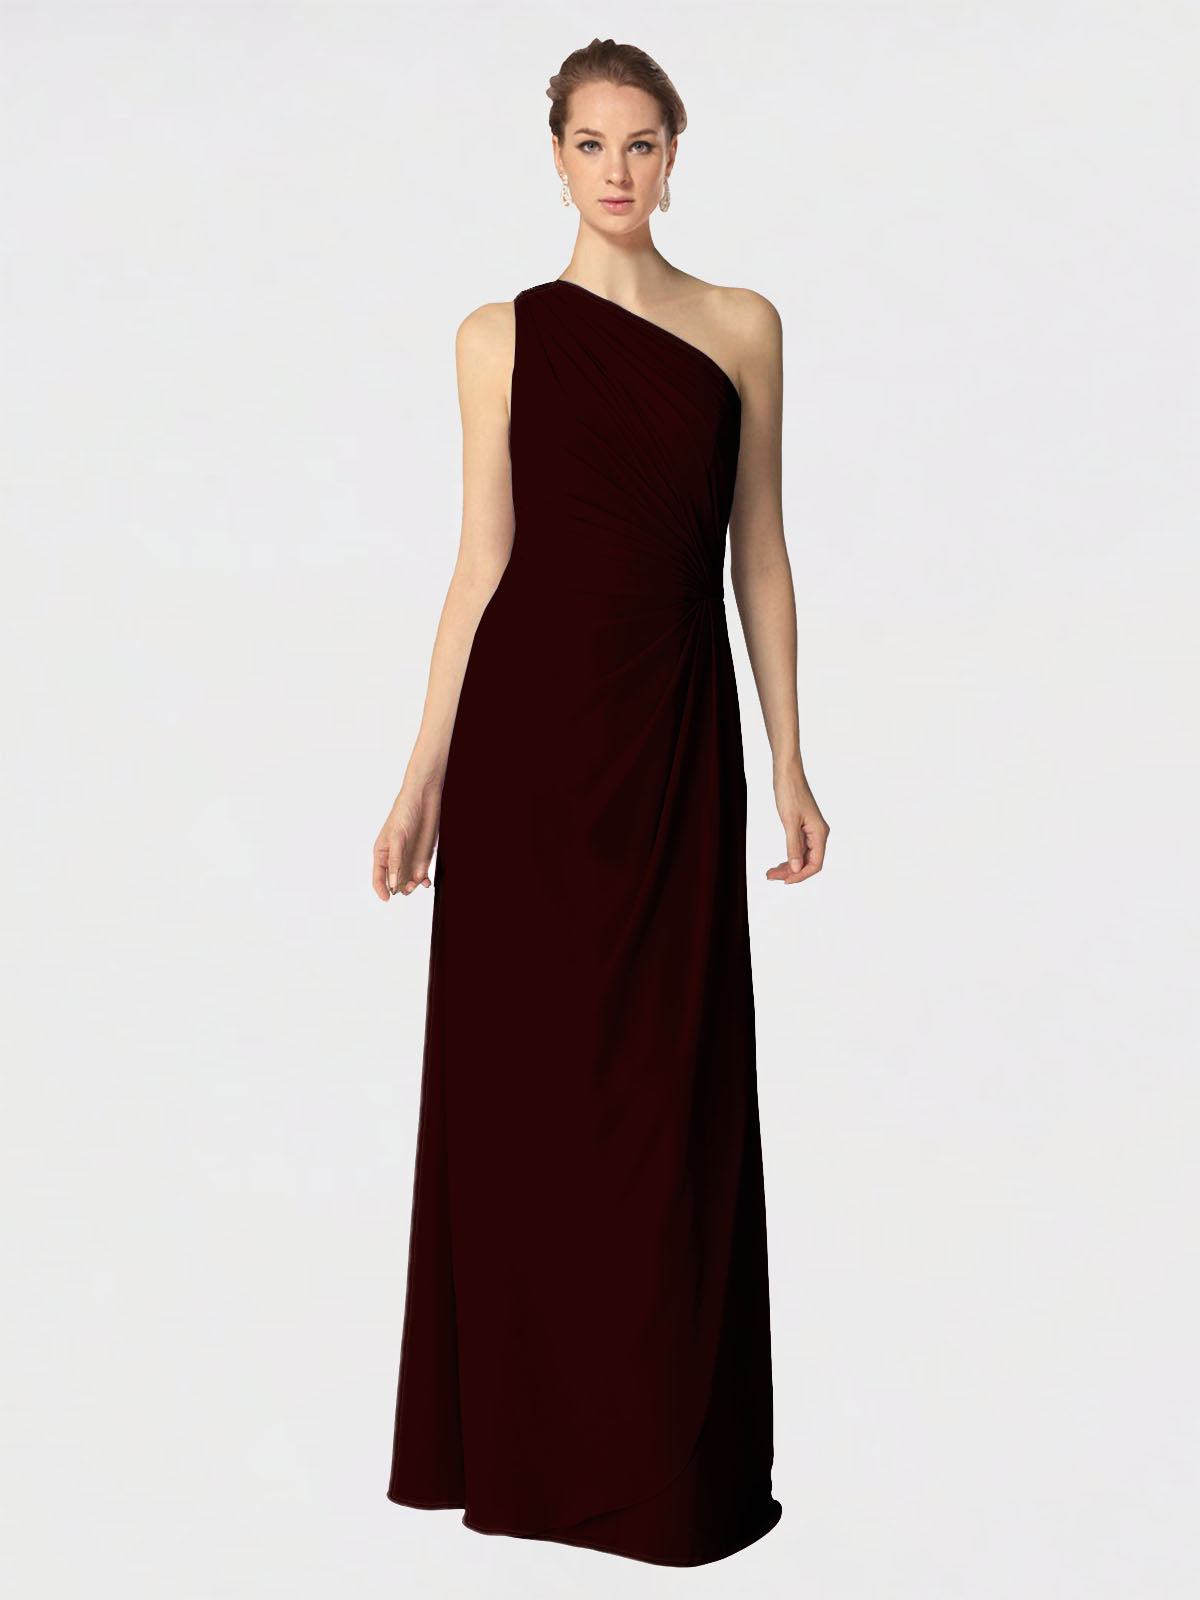 Long A-Line One Shoulder Sleeveless Burgundy Gold Chiffon Bridesmaid Dress Aurora